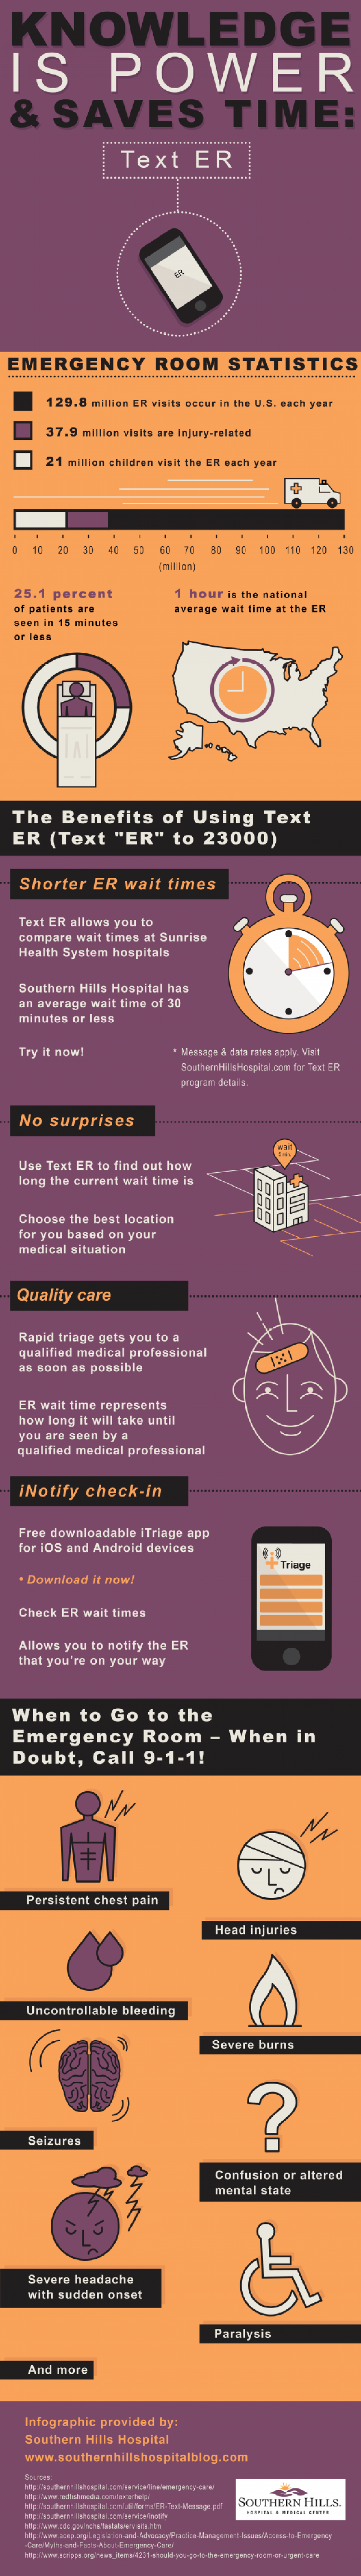 Knowledge is Power & Saves Time: Text ER Infographic